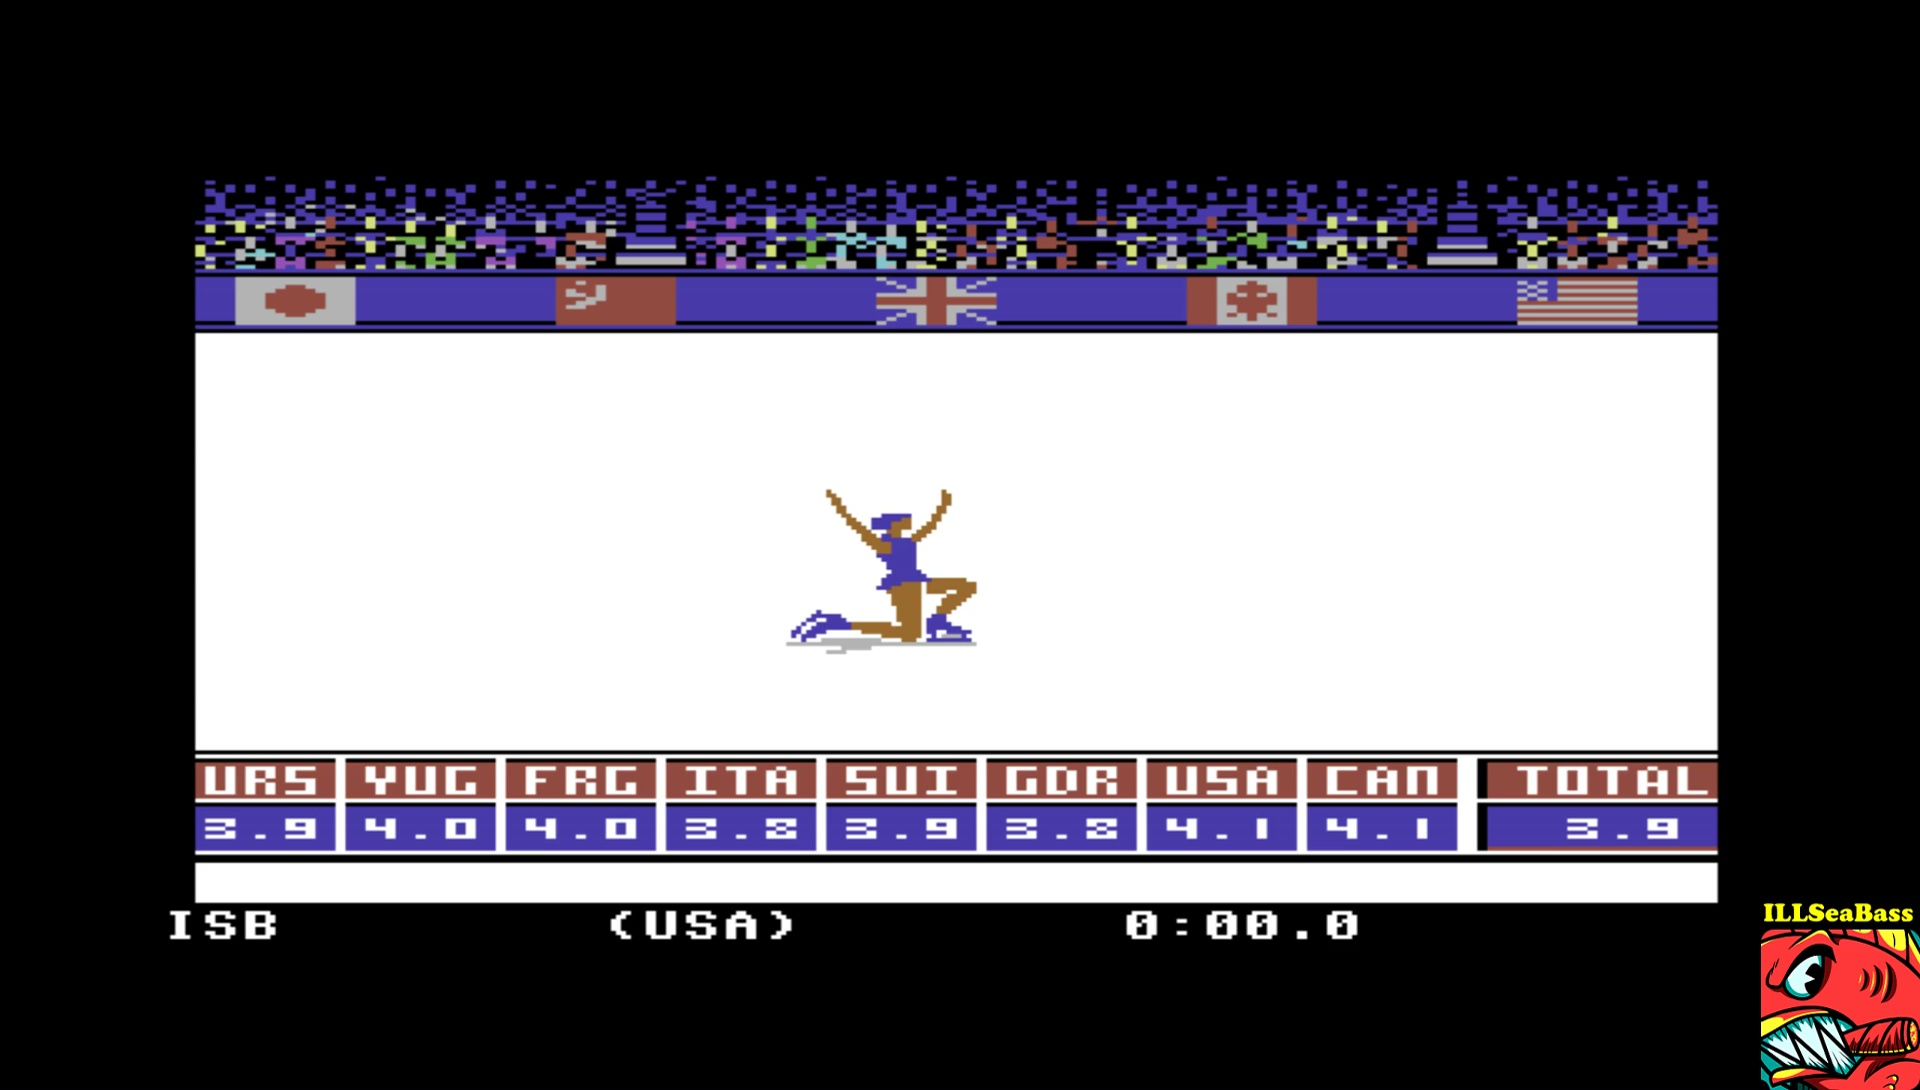 ILLSeaBass: Winter Games: Figure Skating (Commodore 64 Emulated) 39 points on 2017-04-24 12:02:01